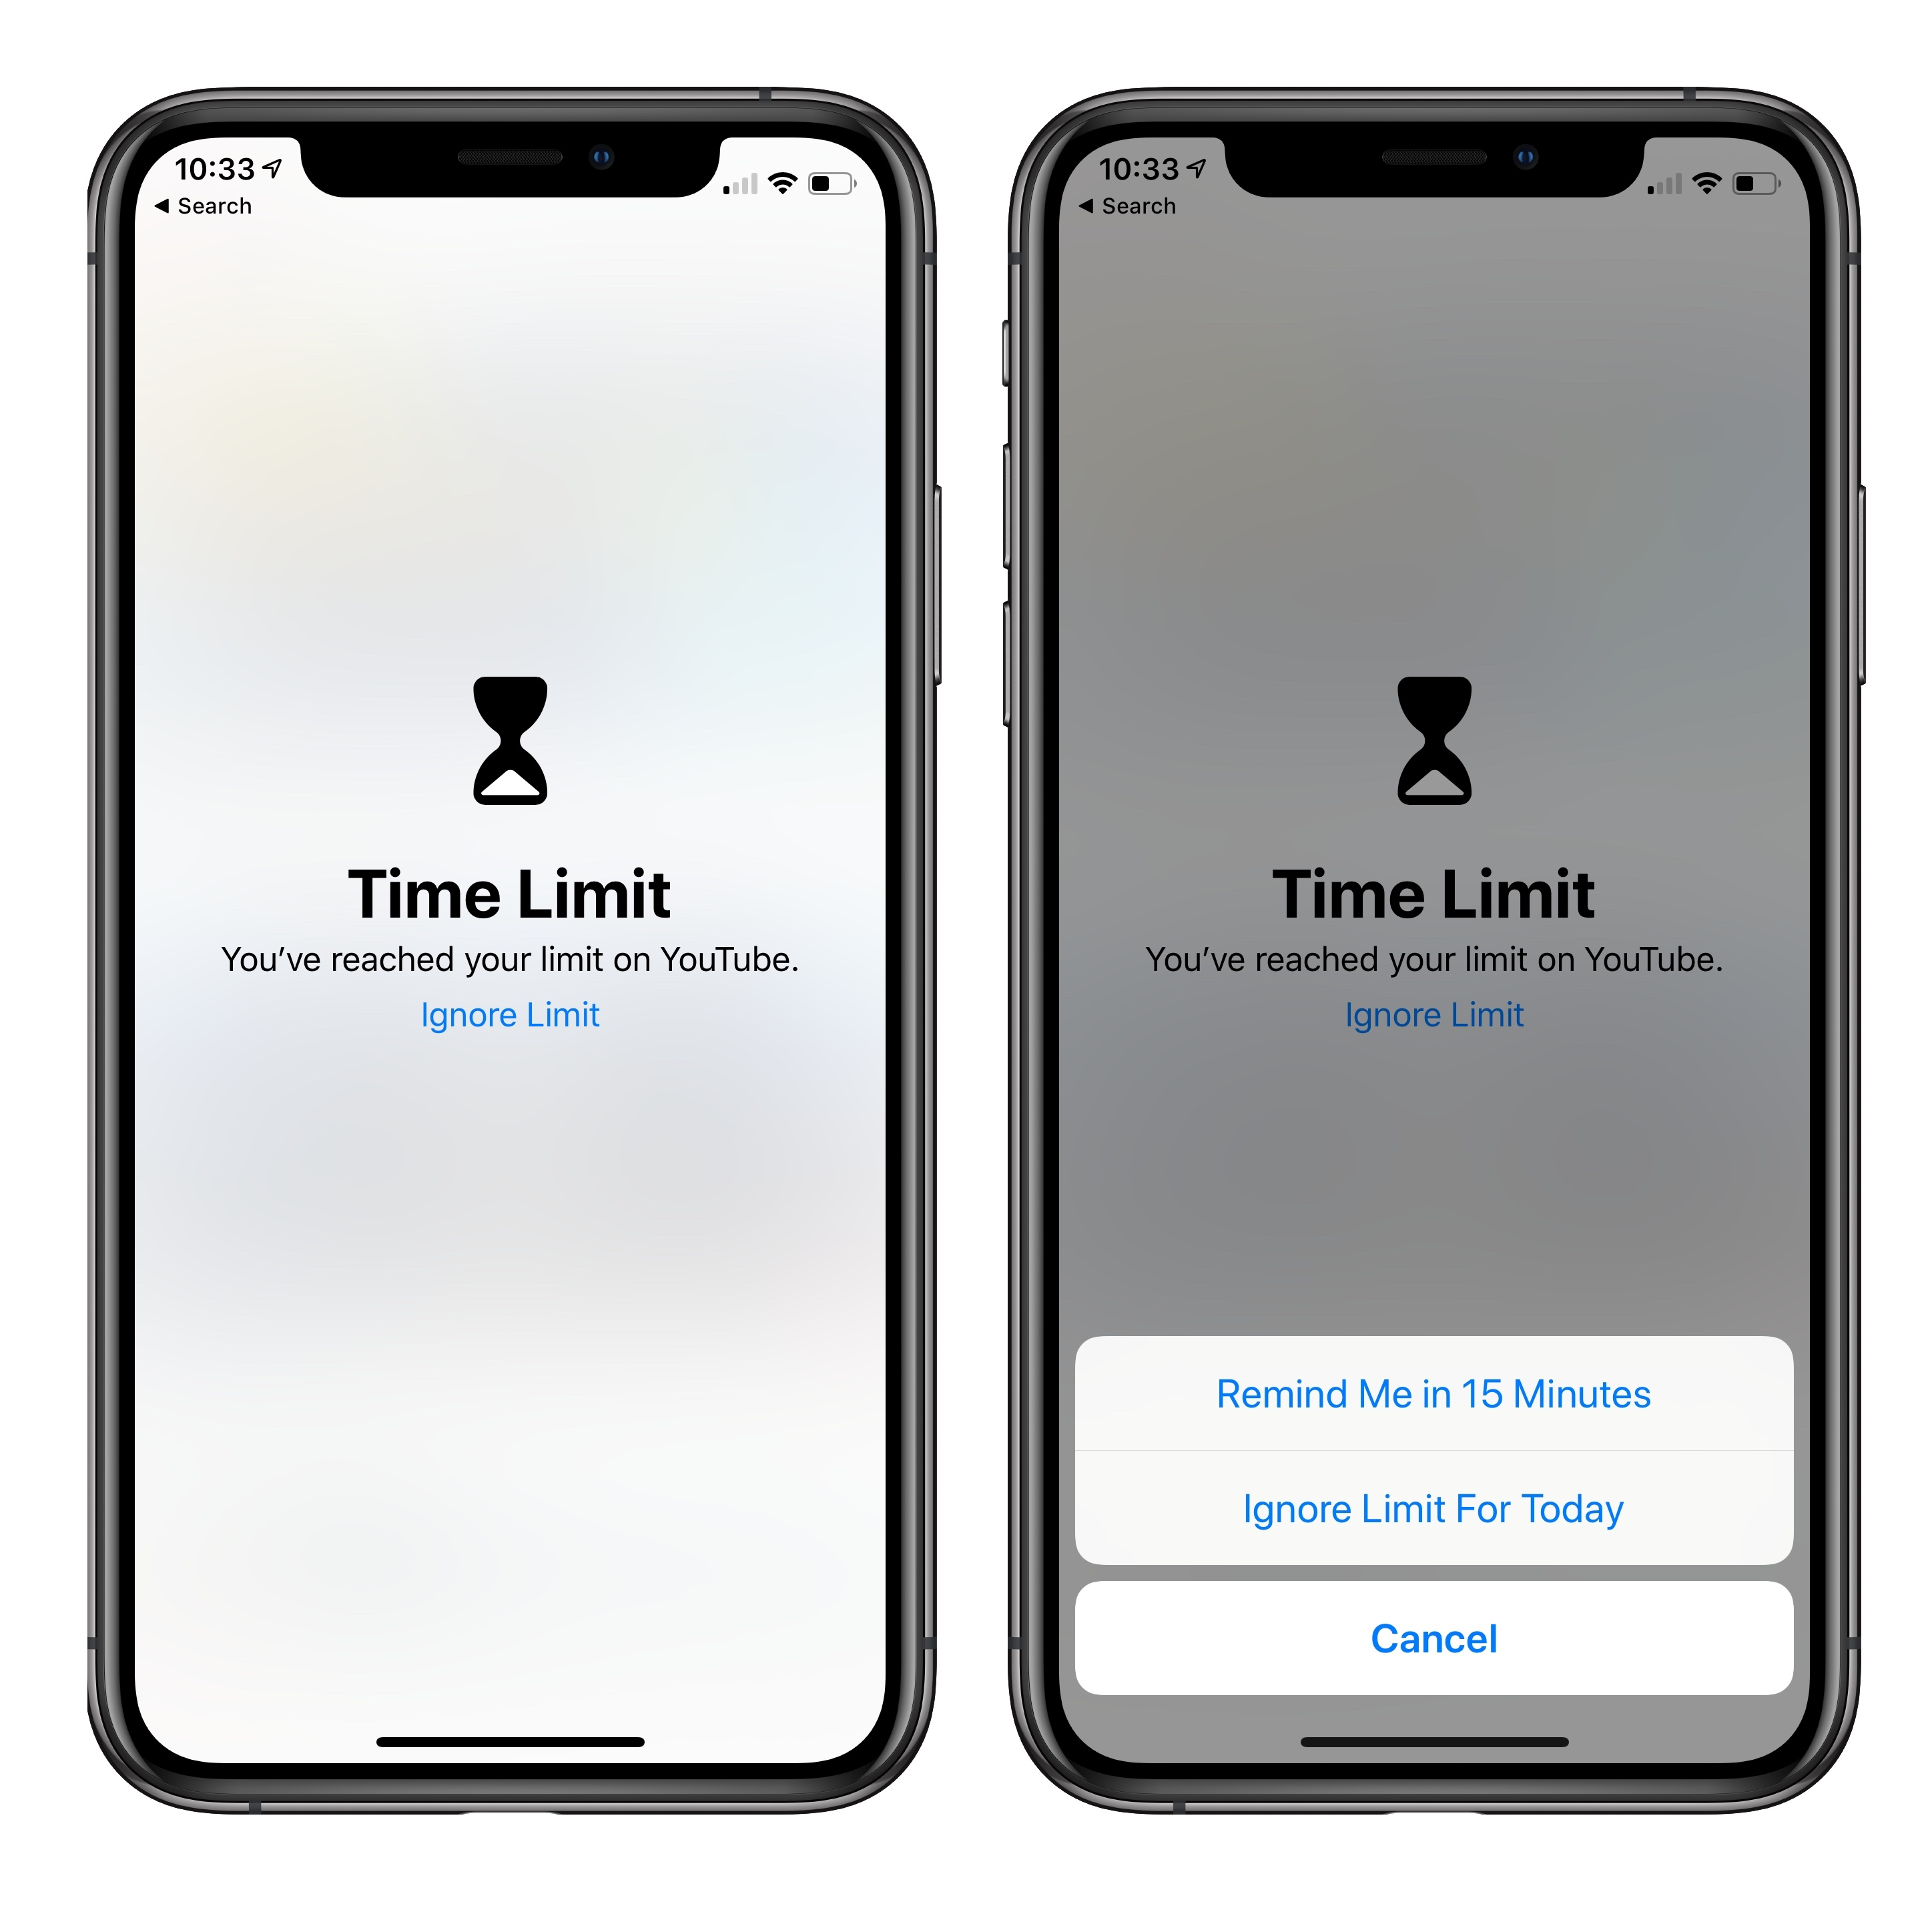 iPhone time limit: How to set a time limit for a specific app on iOS